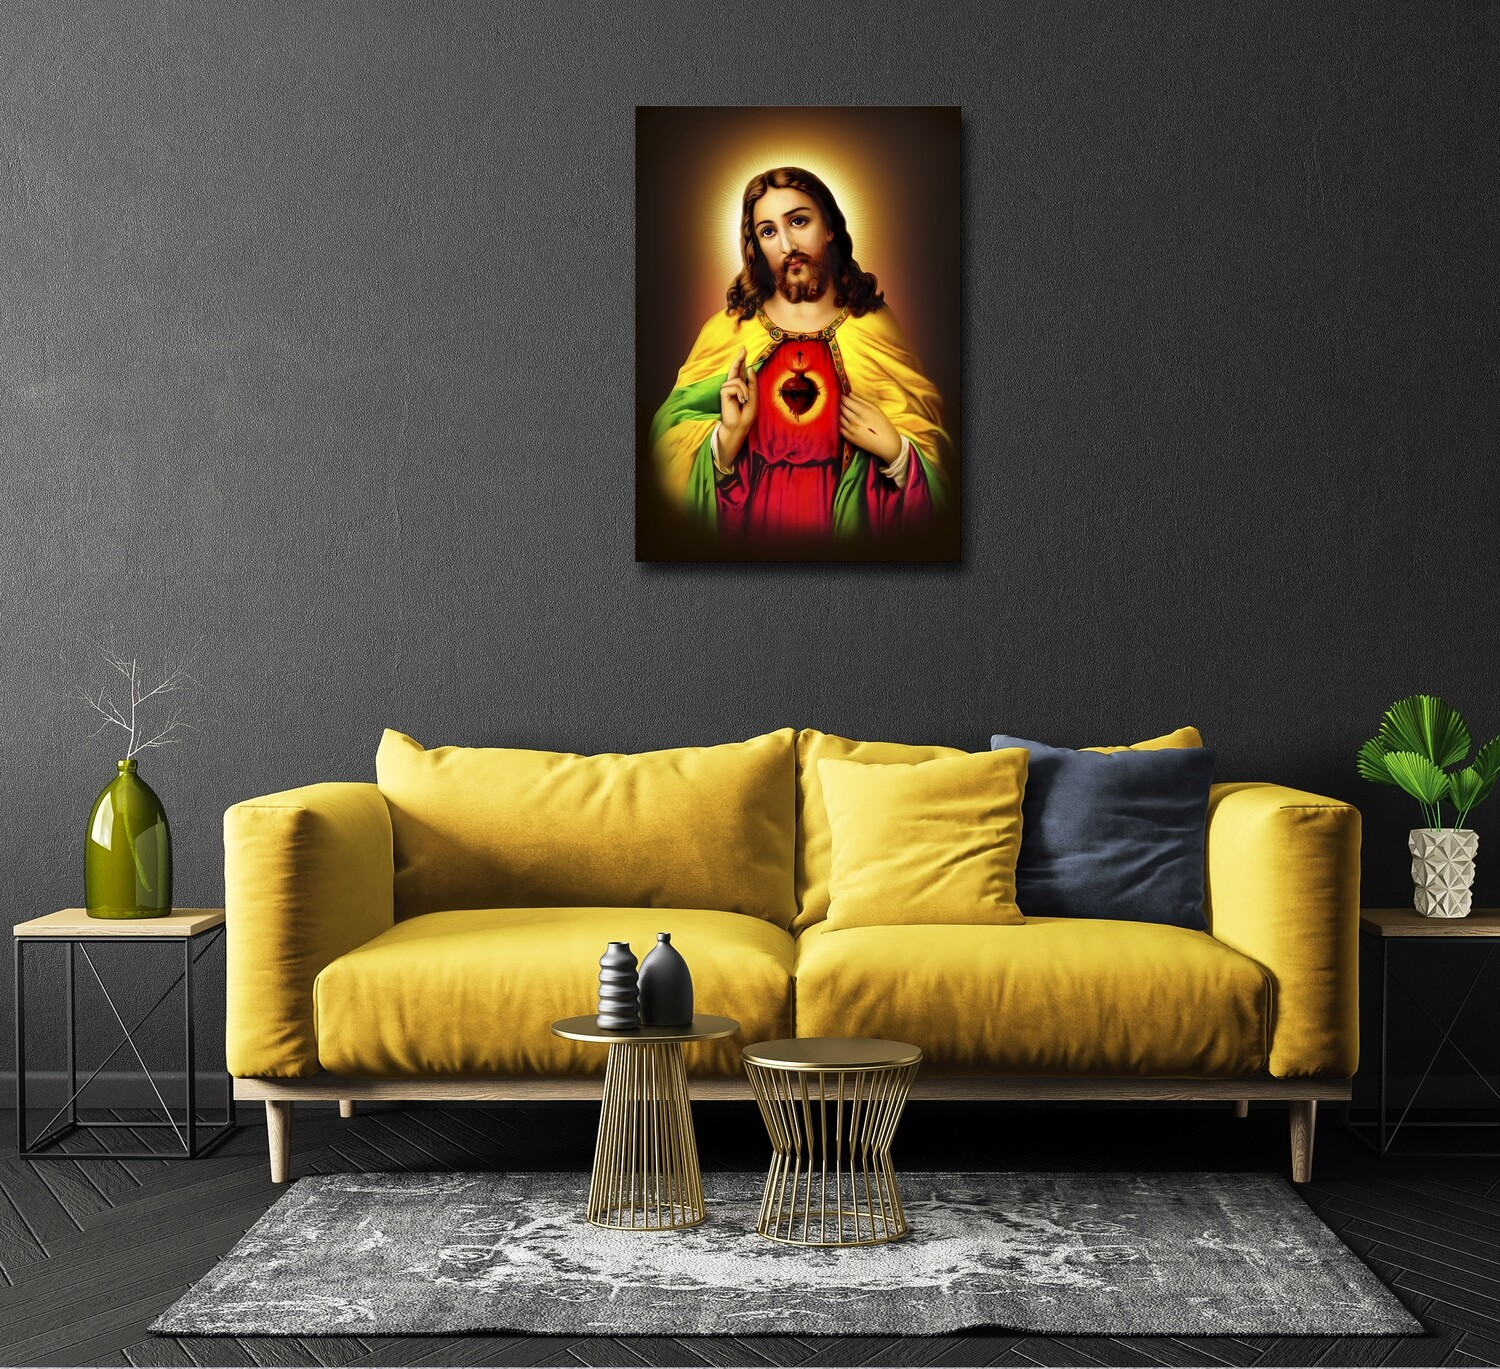 Jesus Sacred Heart Painting |Christian Wallart |The Sacred Heart Picture Printed on Frameless Acrylic Glass | Ready To Hang